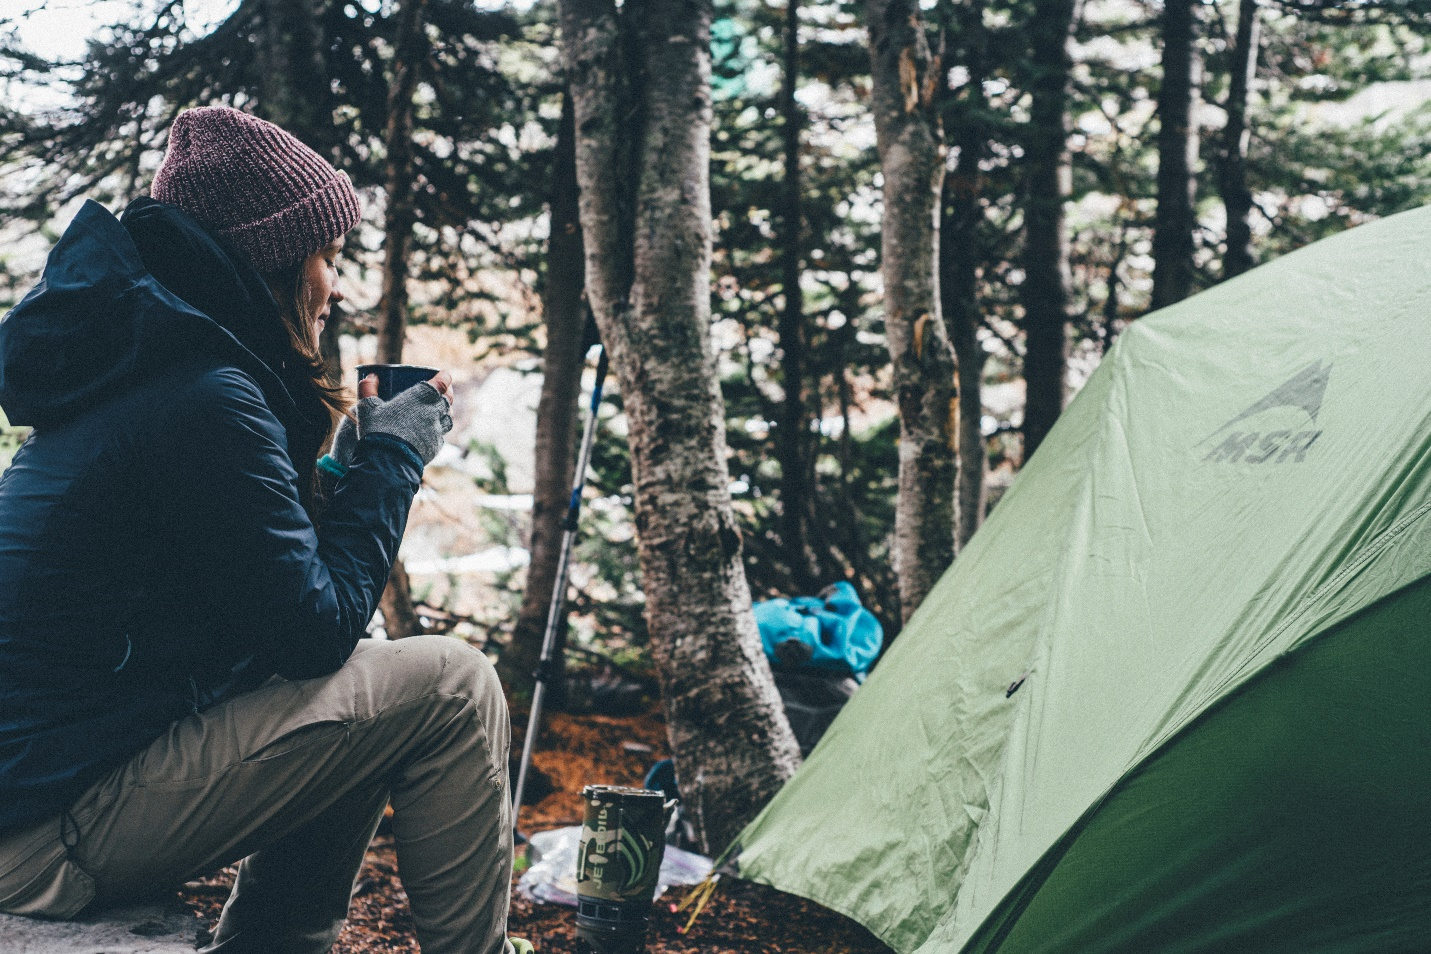 Camping woman in front of tent